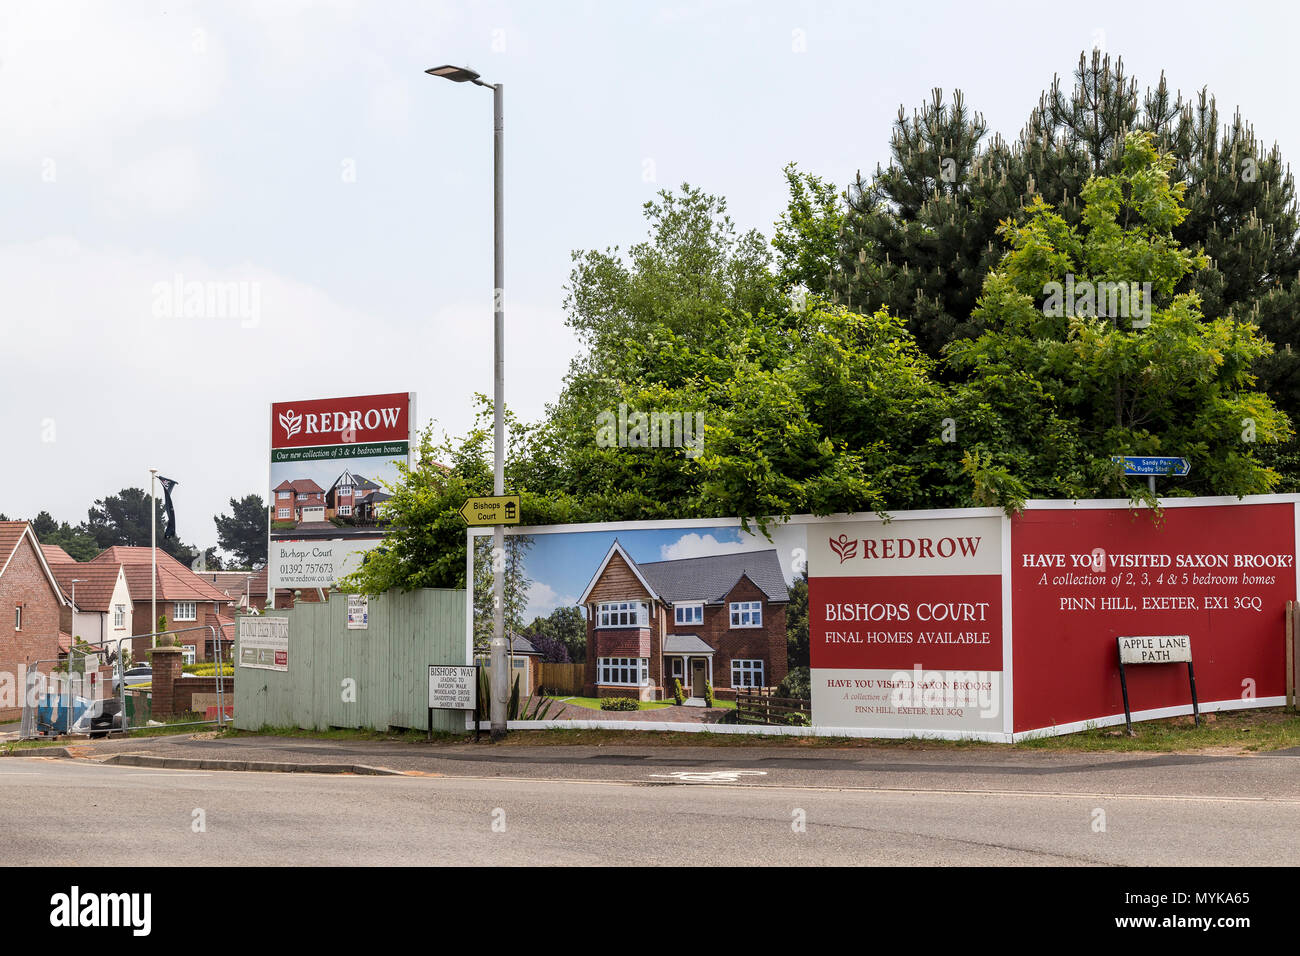 UK's fastest growing house builder, UK's leading residential housing developers, thriving communities, building responsibly,Redrow West Country, - Stock Image